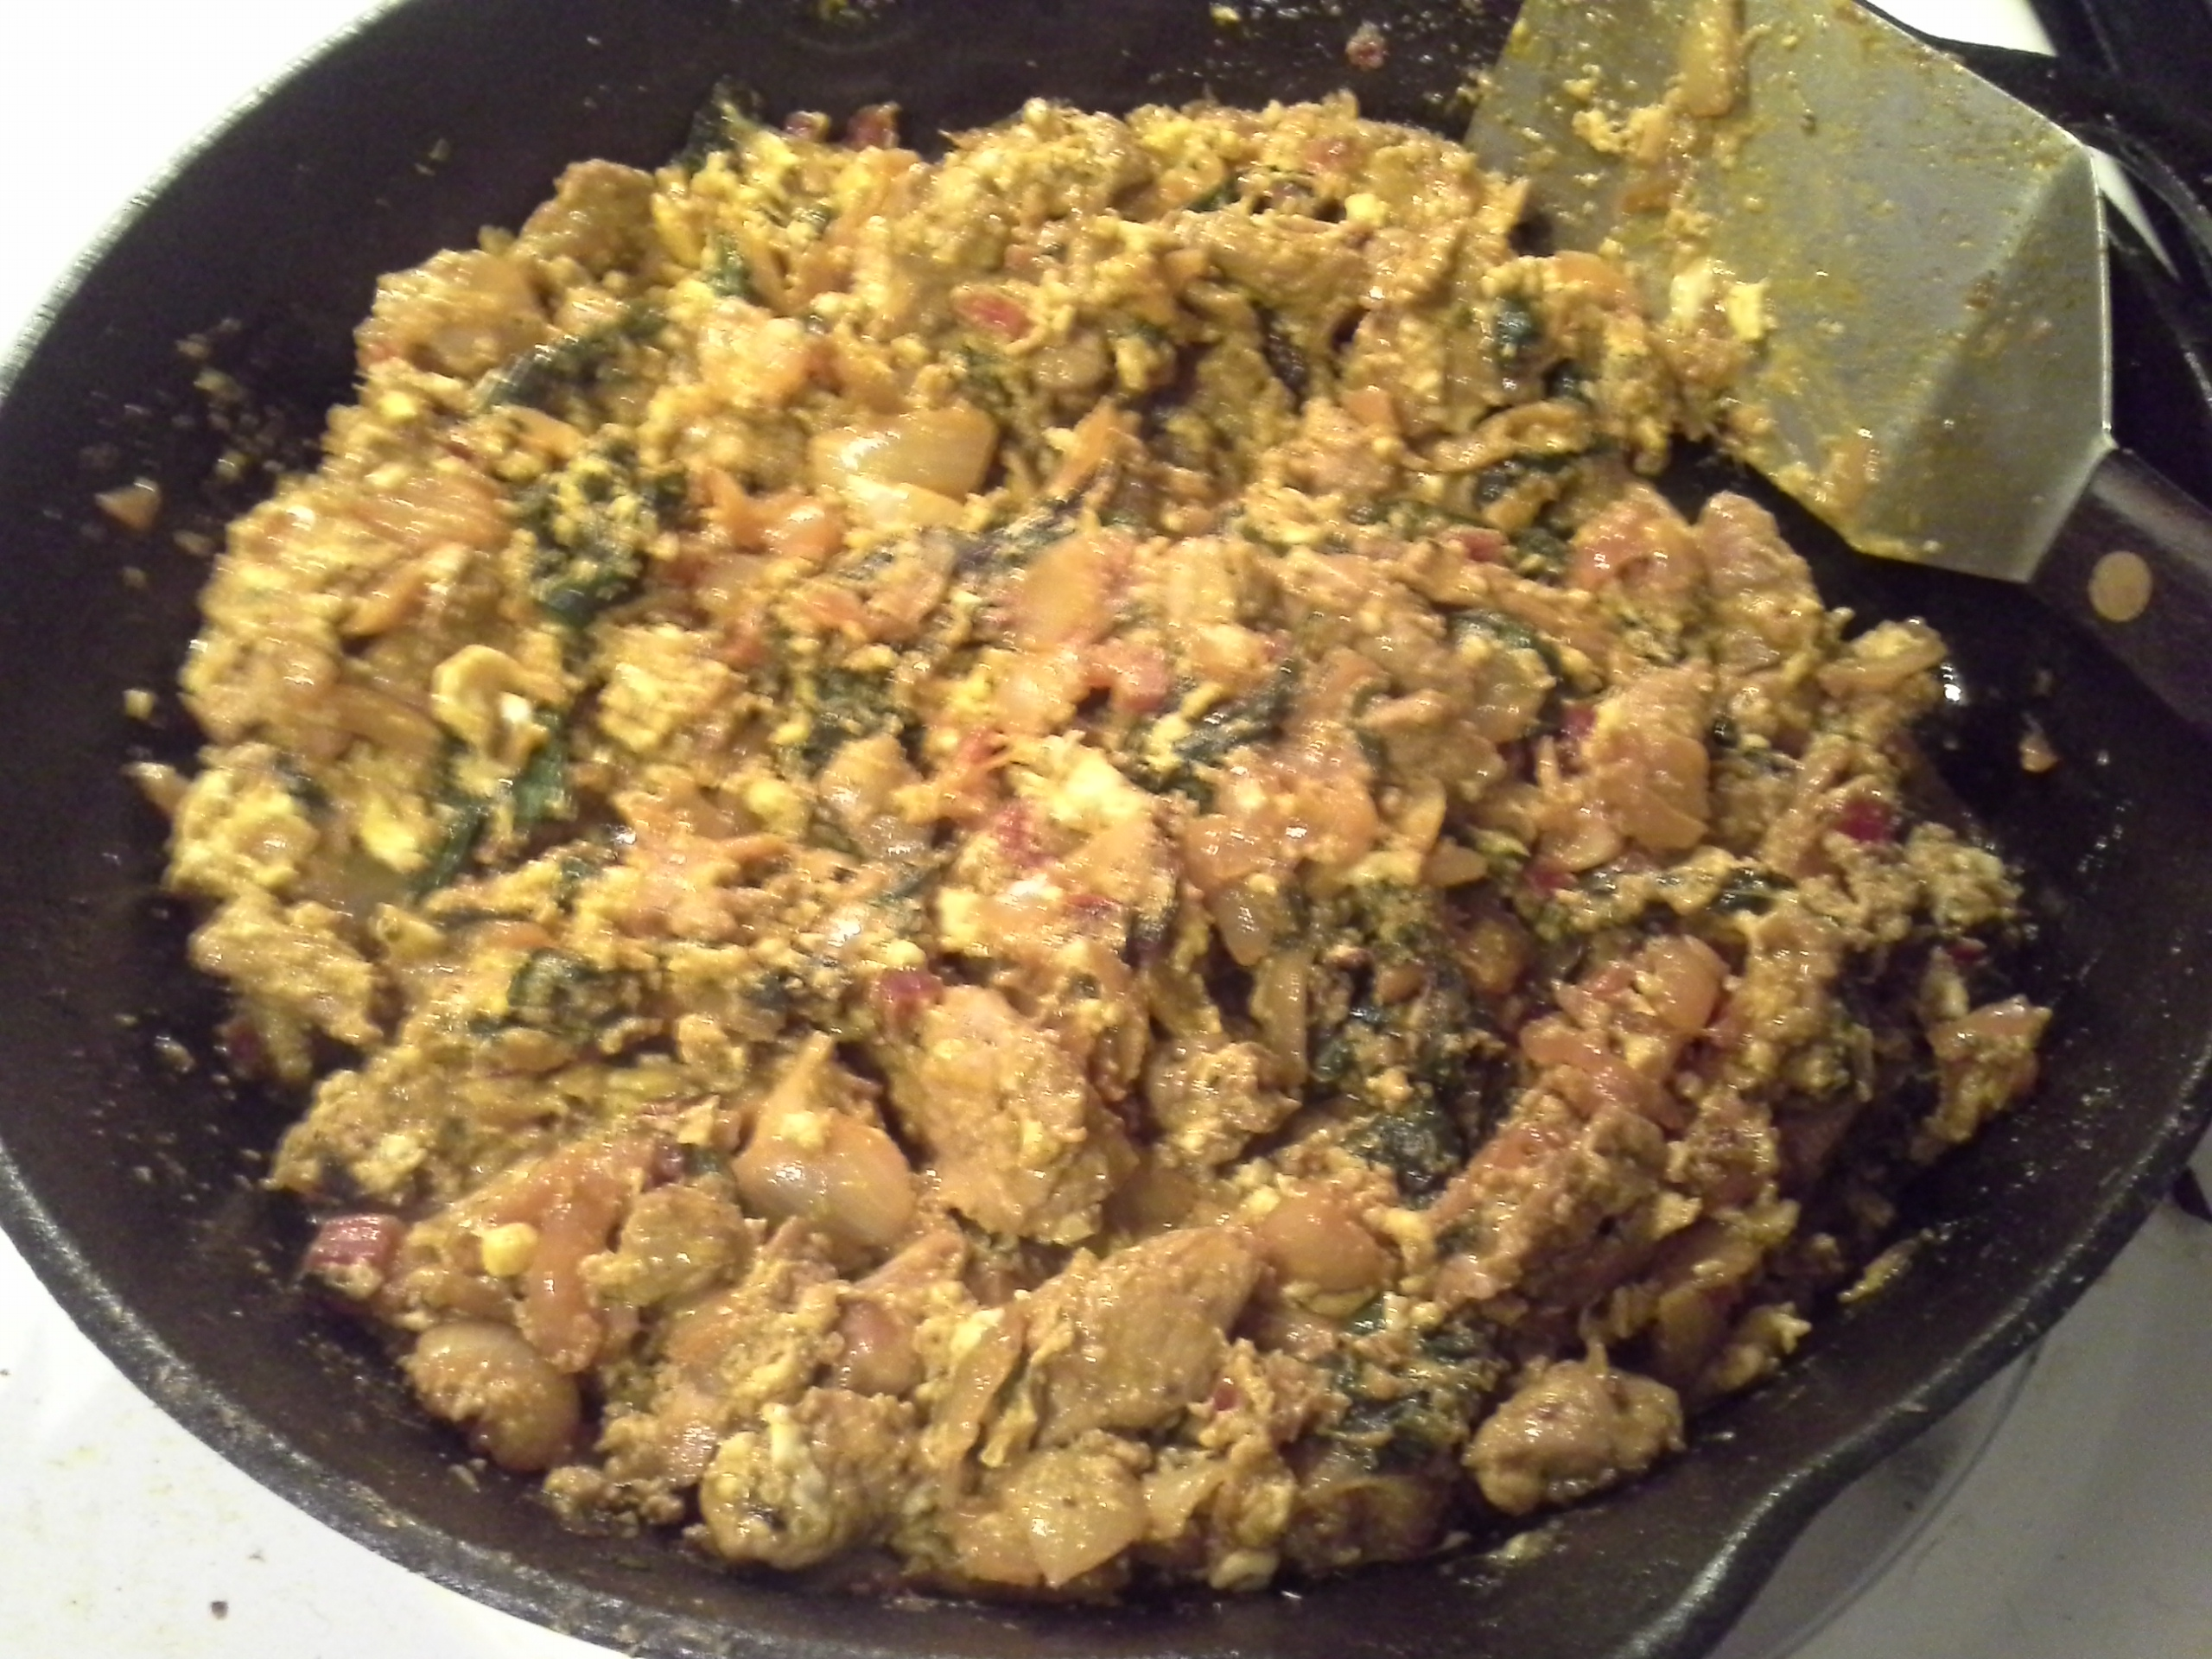 Dinner: 9:50 p.m. | 1/2 pork loin, 3 red chard leaves & stems, 1/2 sweet onion, 4 cloves garlic, 2 eggs, 2 Tbsp. red palm oil, herbs & spices